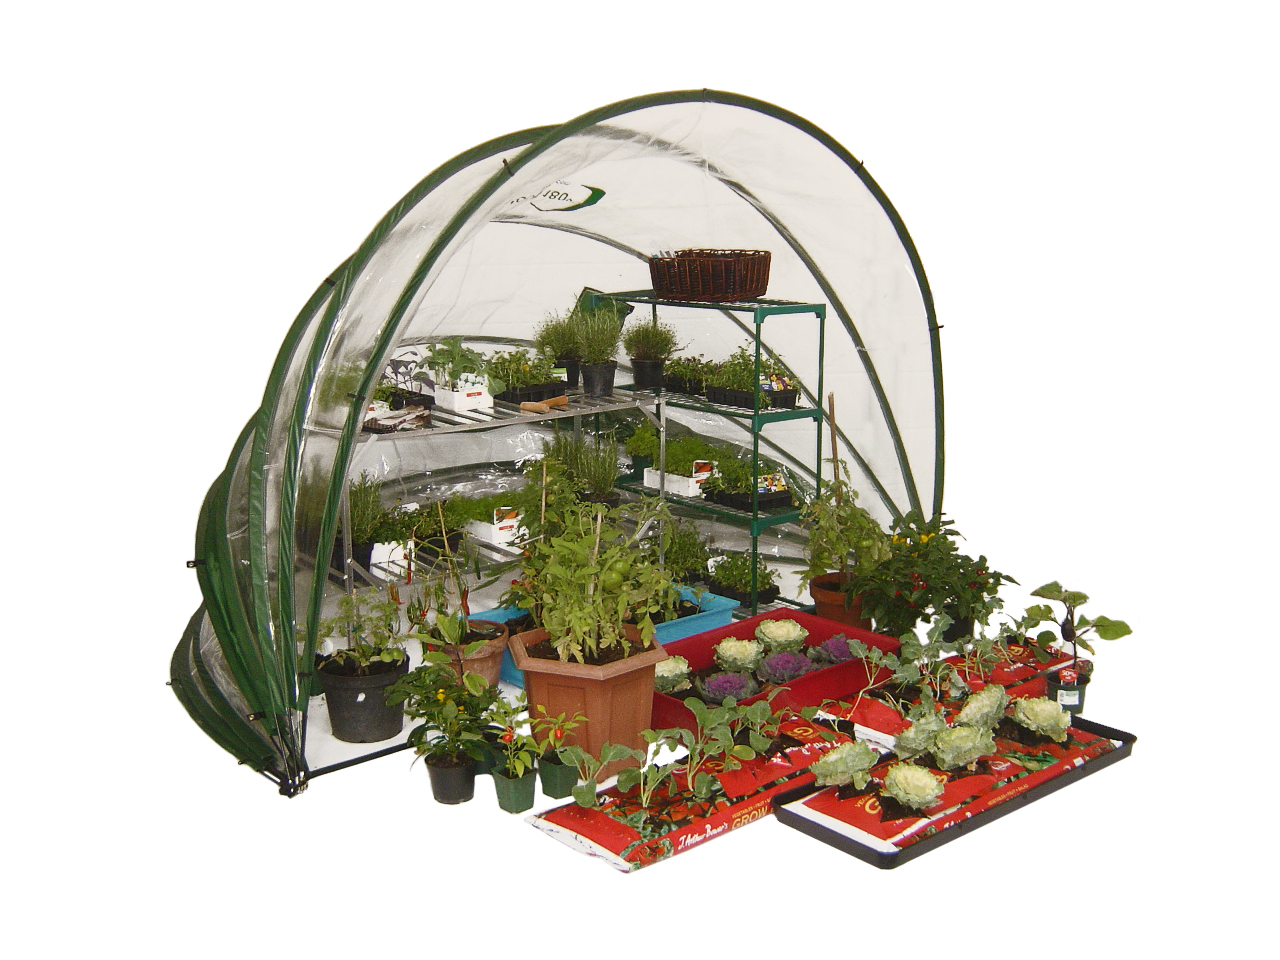 Horti Hood 180 PVC Greenhouse from Cave Innovations